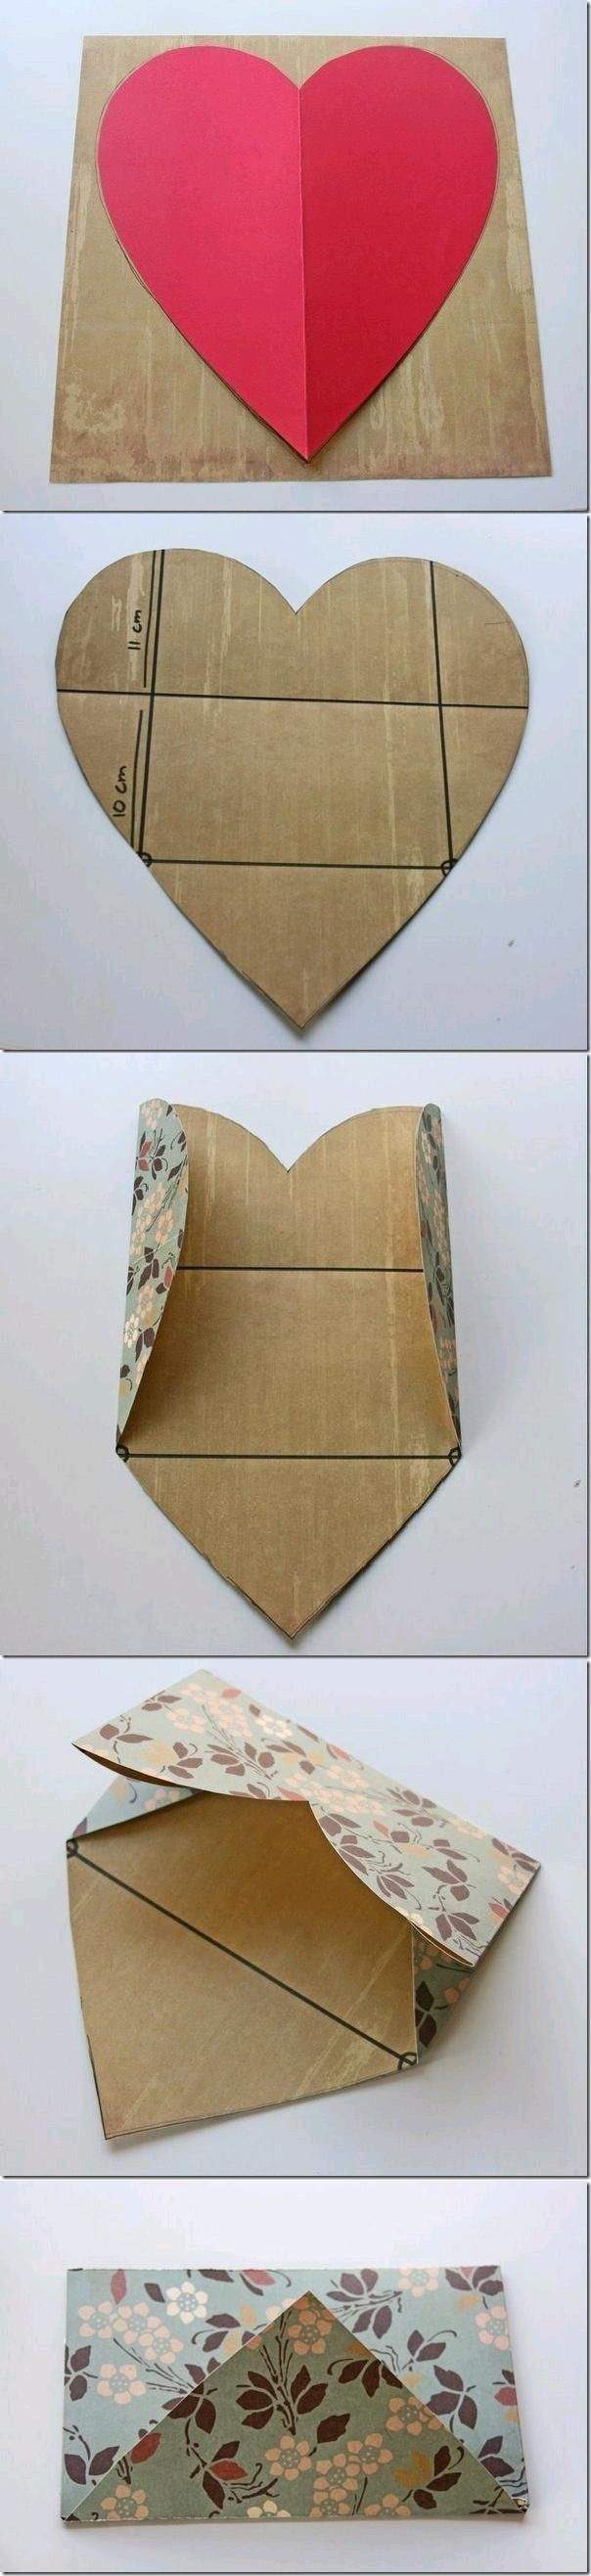 DIY Envelope from a Heart DIY Envelope from a Heart: